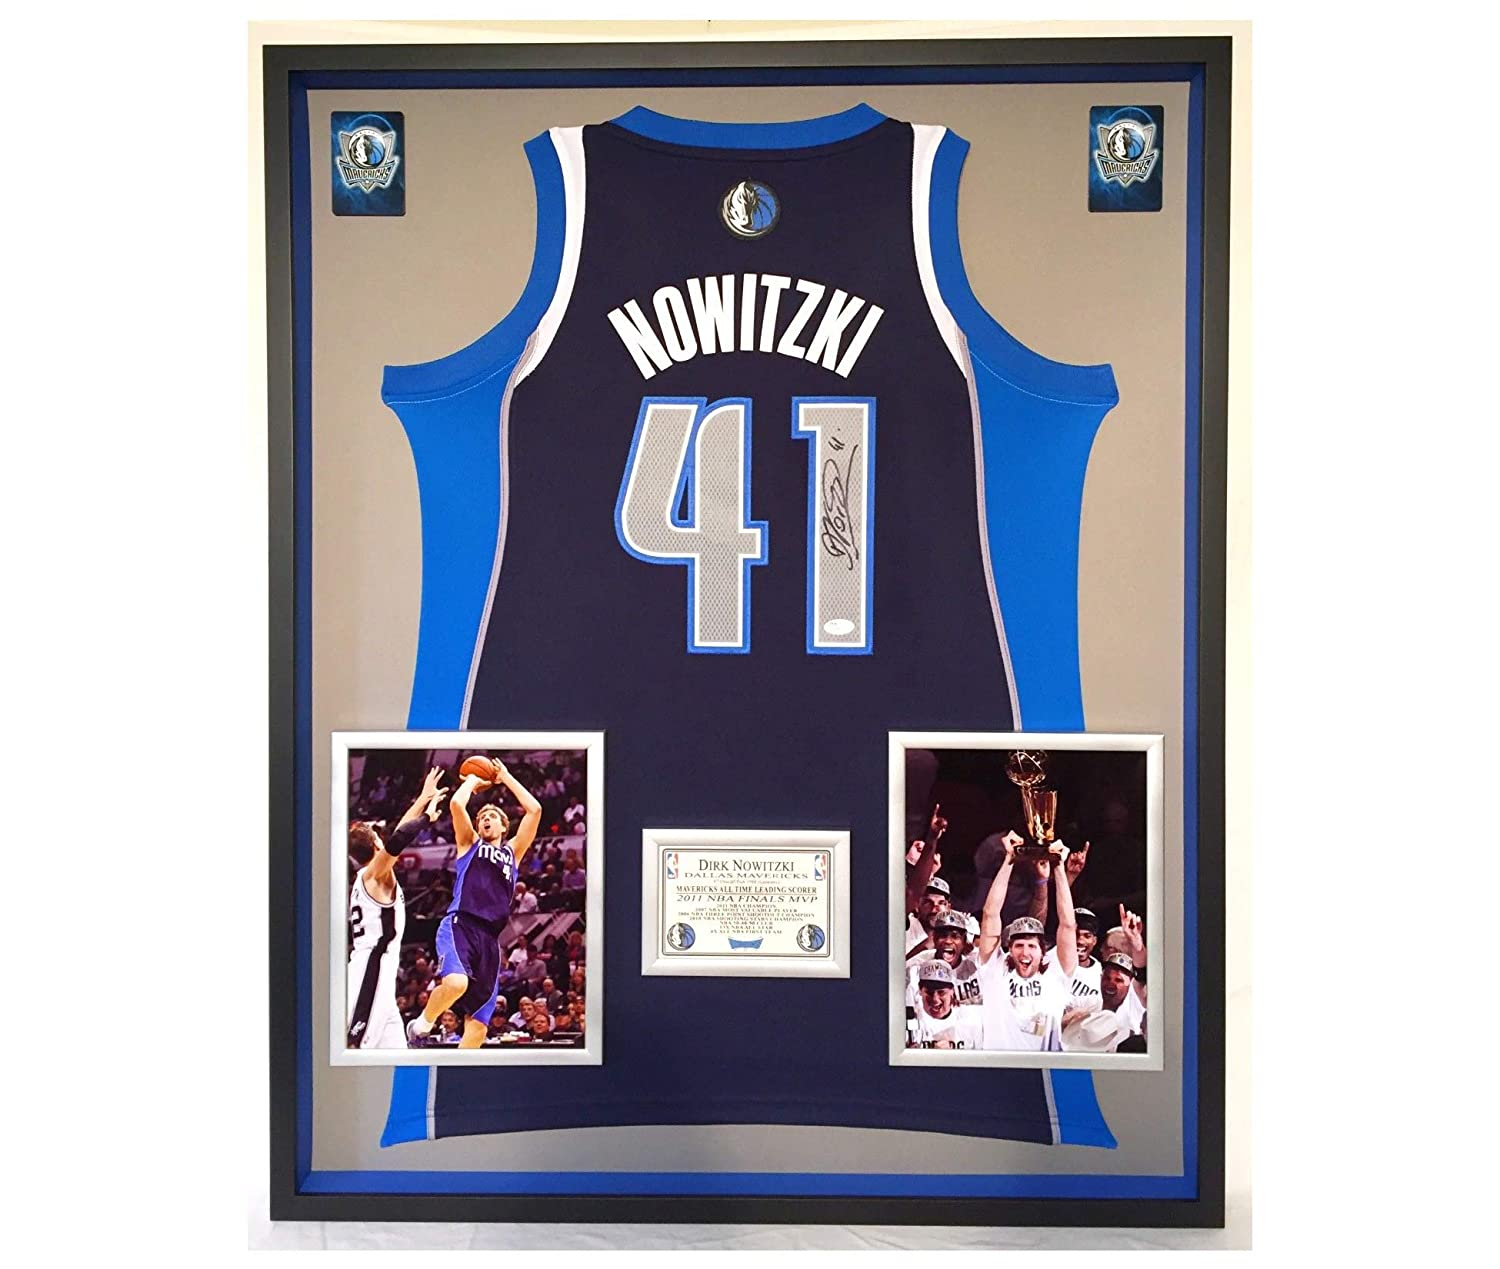 ... spain premium framed dirk nowitzki autographed signed dallas mavericks  adidas jersey jsa coa at amazons sports 1643dba21